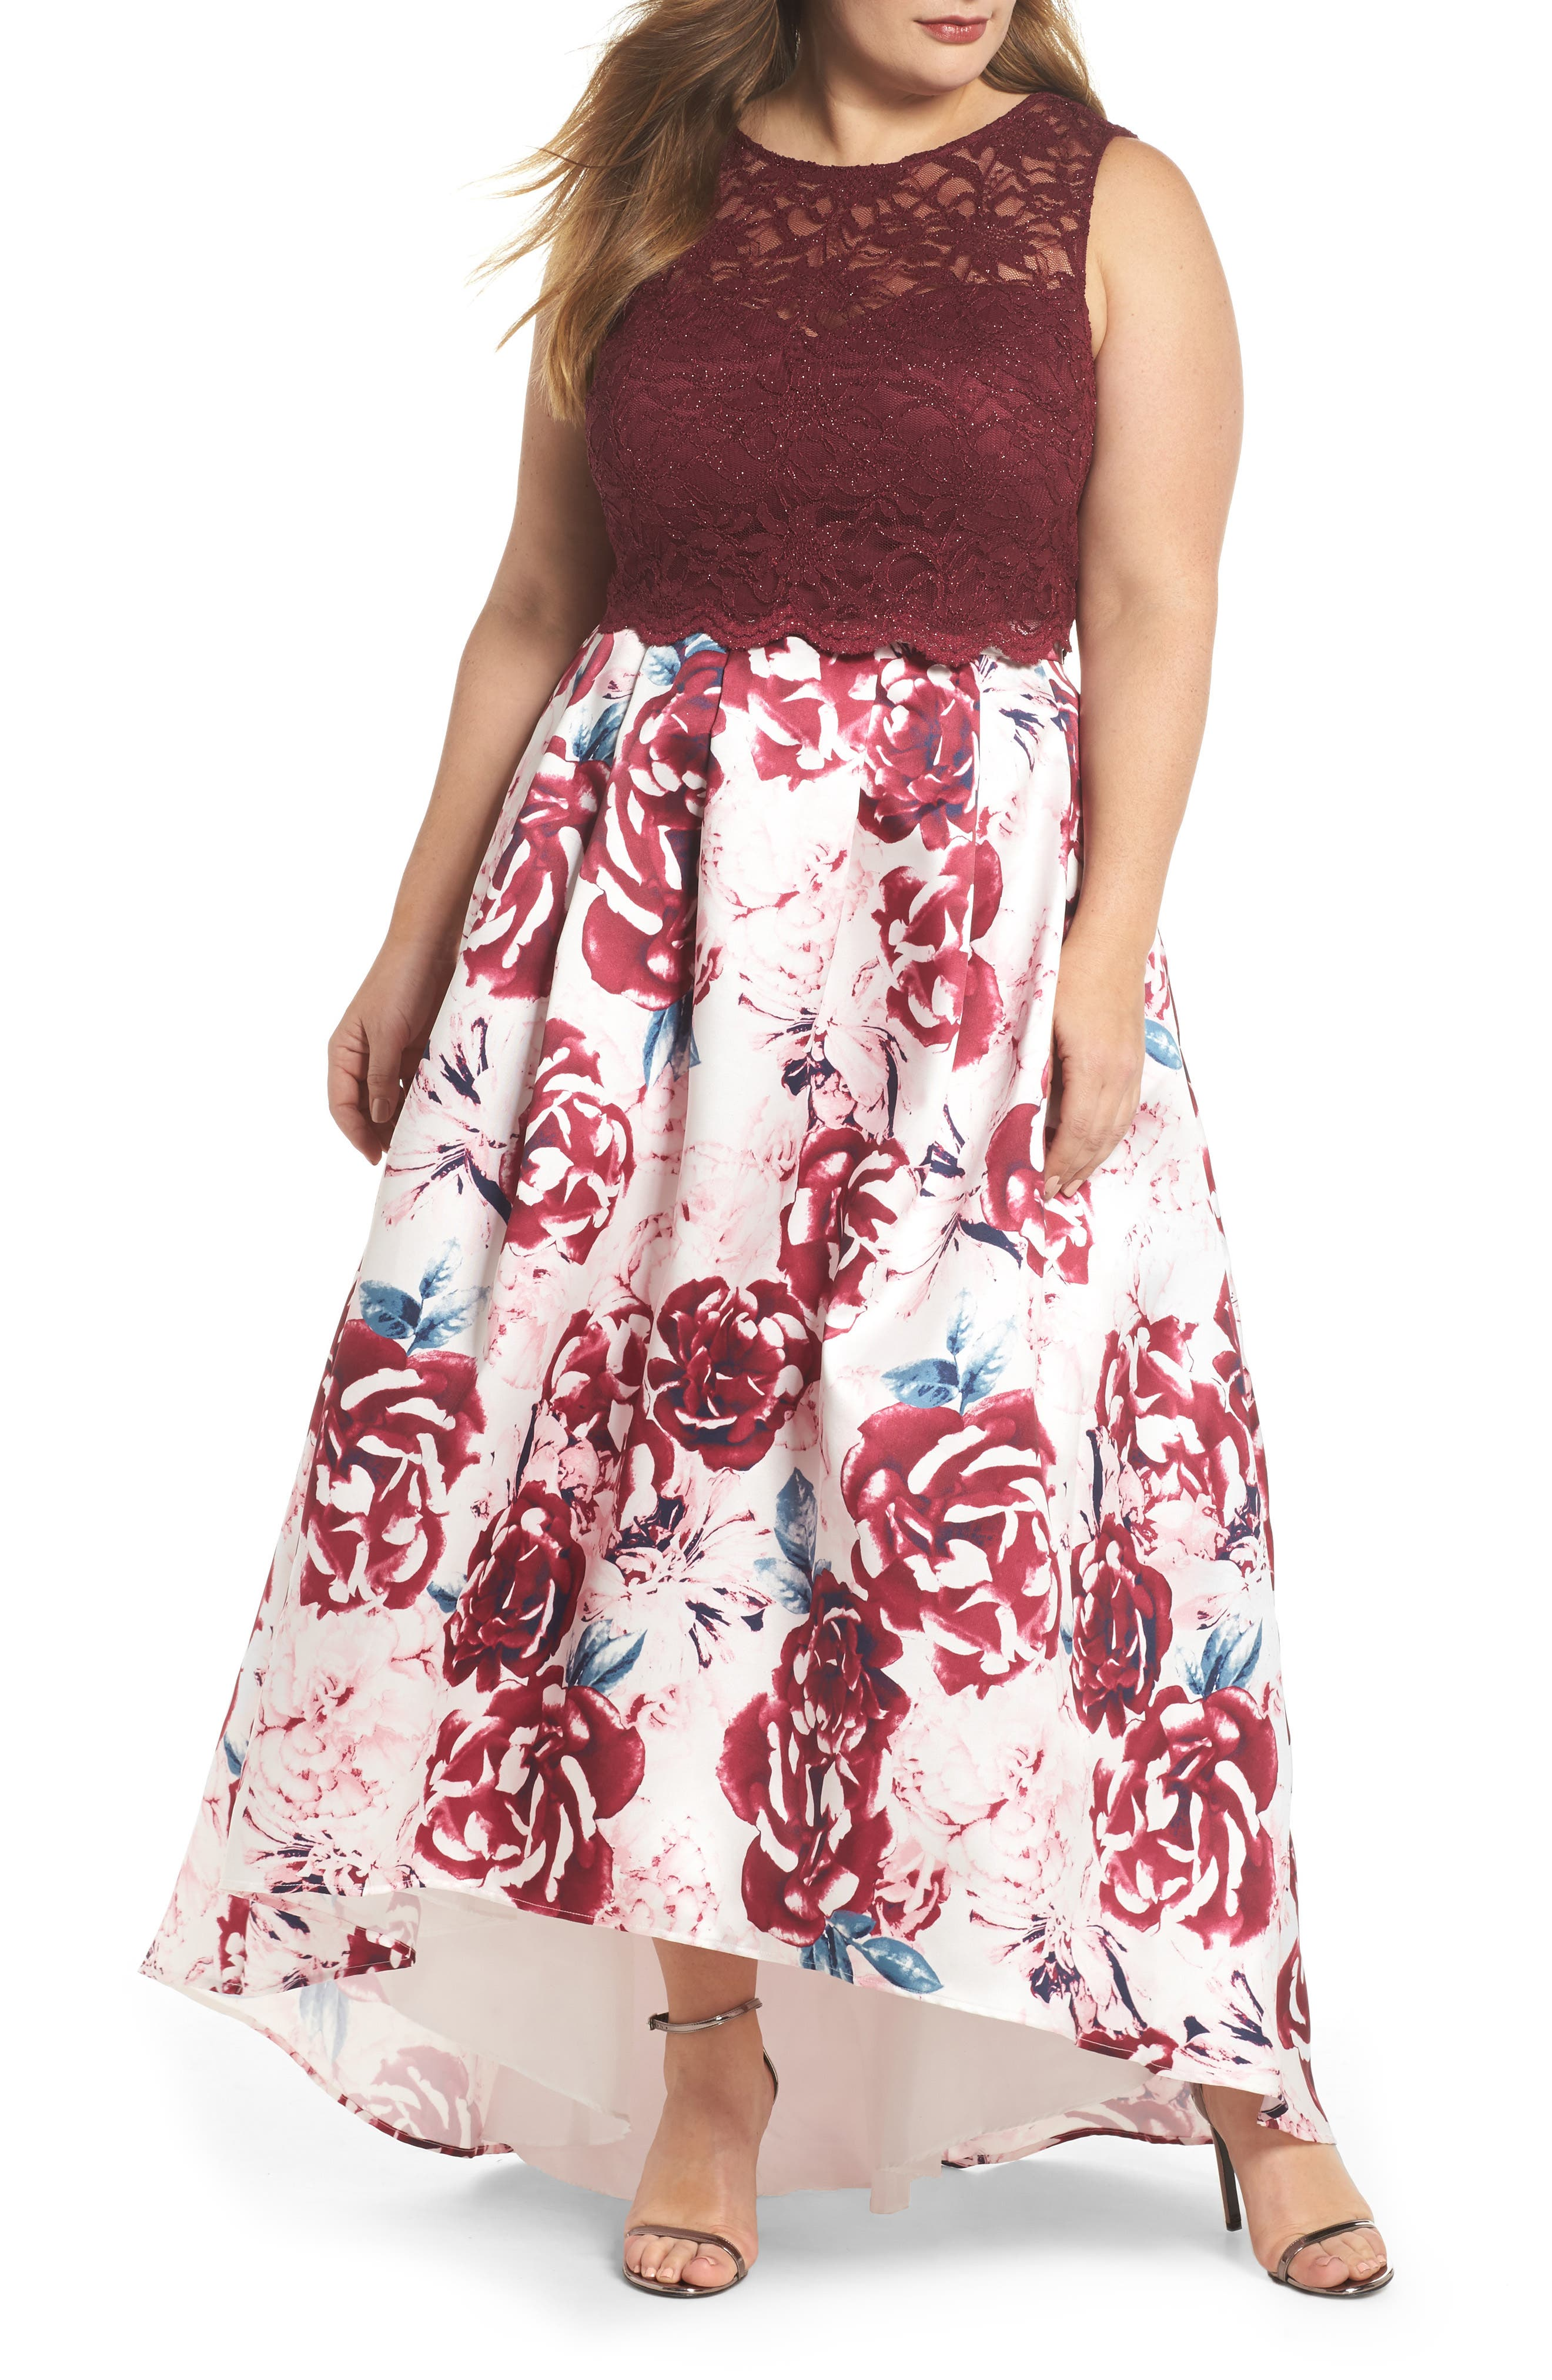 MORGAN & CO., Lace & Mikado Two-Piece Gown, Main thumbnail 1, color, MERLOT/ PINK/ IVORY